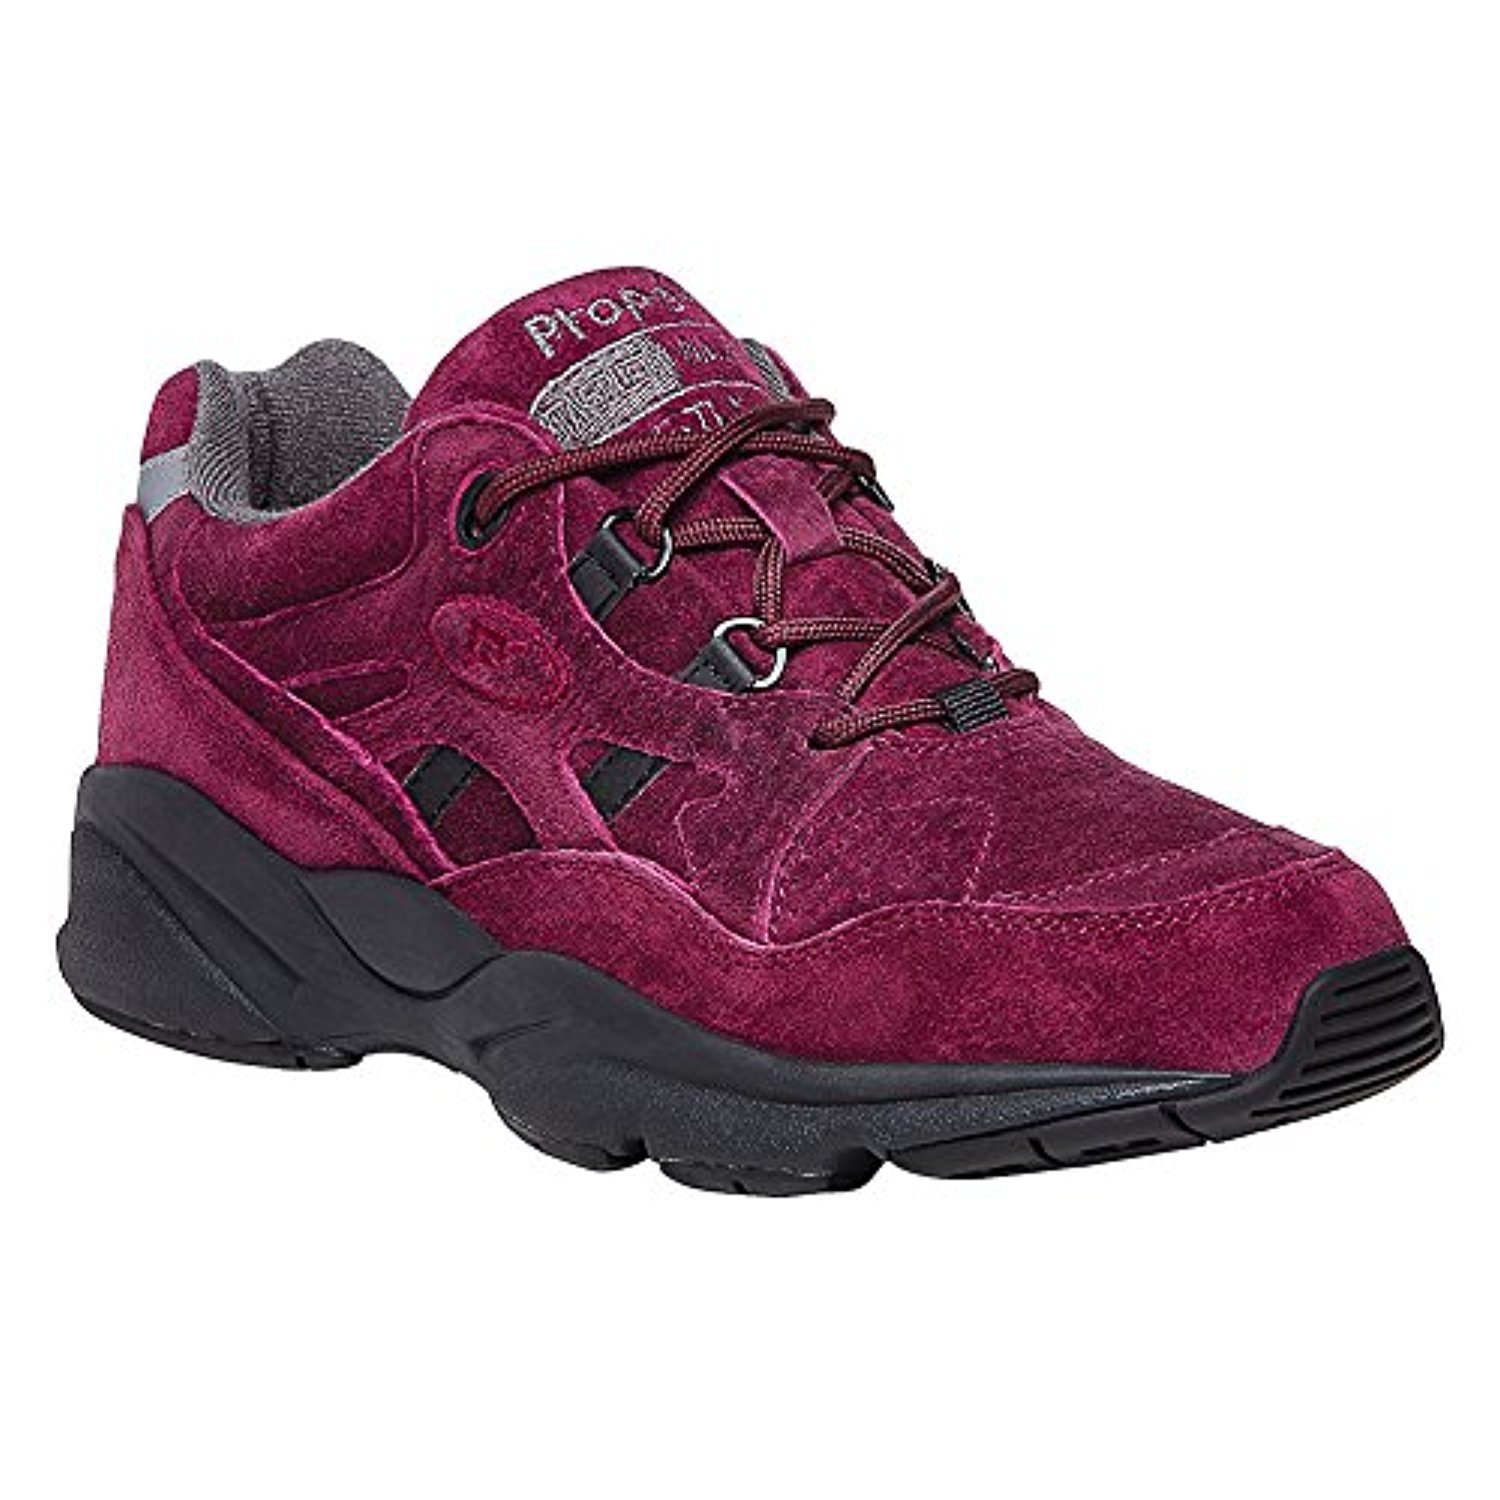 Propet Women's Stability Walker Shoe & Oxy Cleaner Bundle B074WDW27F 13 B(M) US|Berry Suede